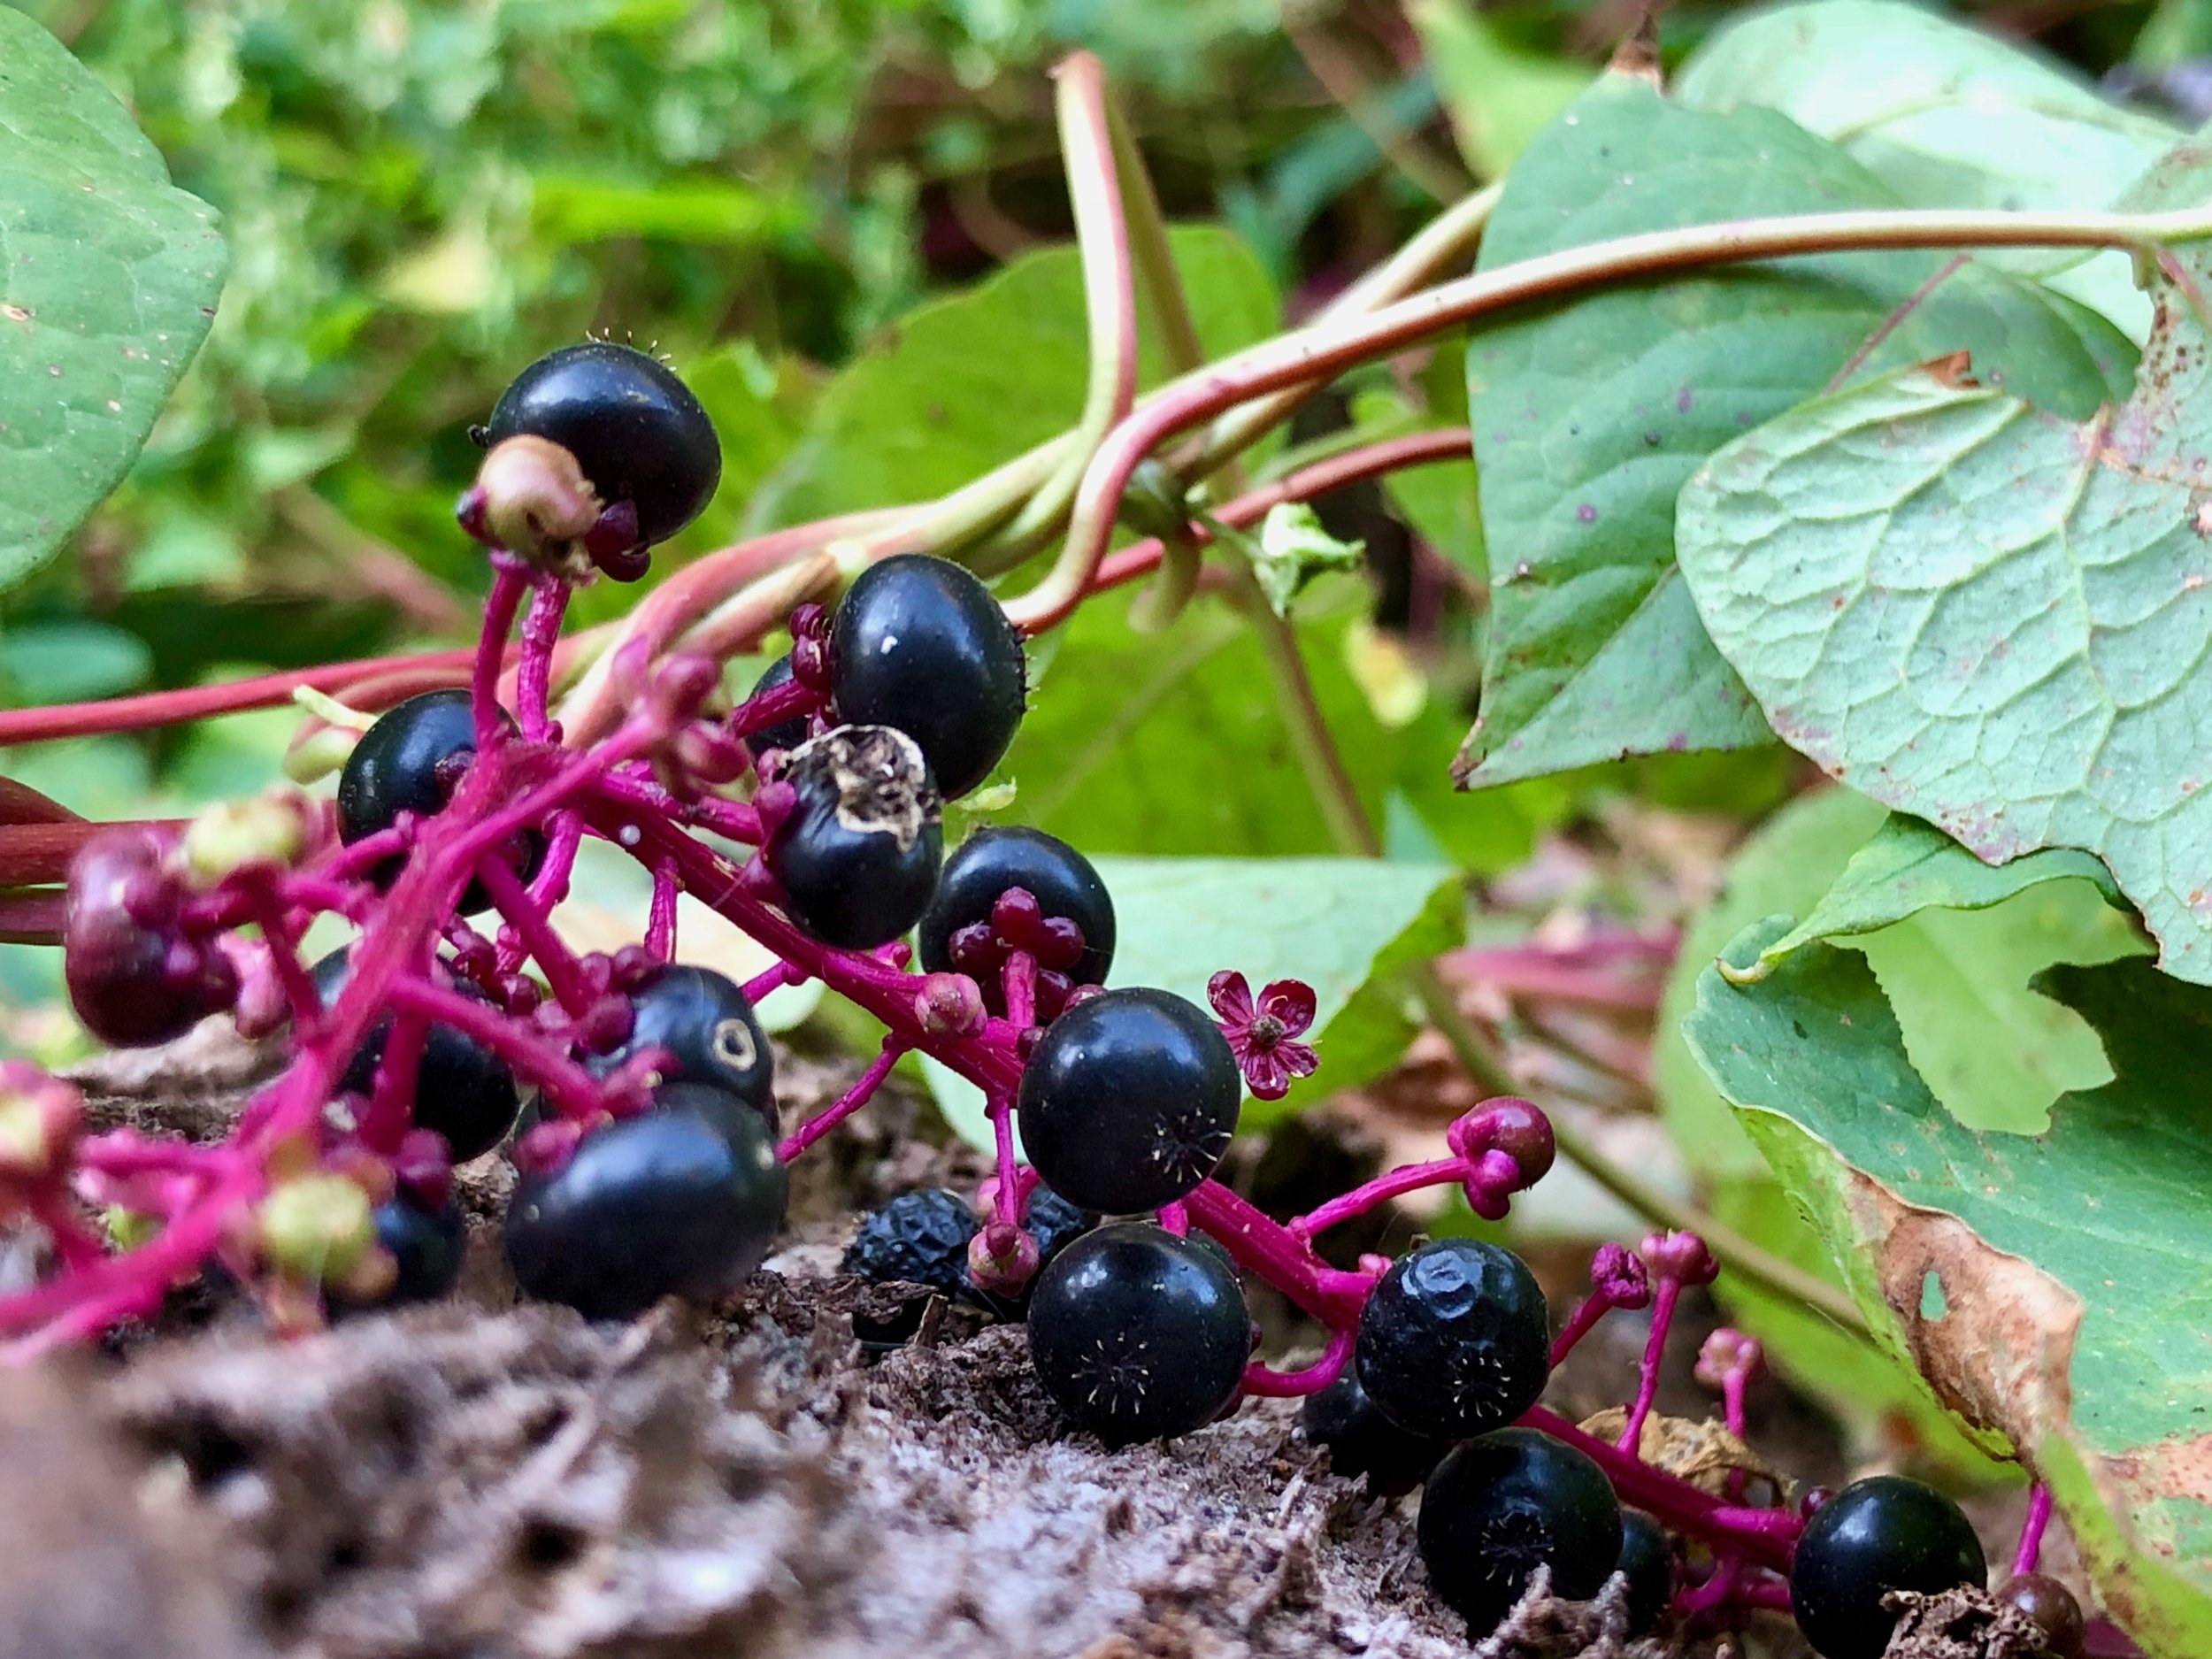 This wasn't the portrait camera, I just got super close to this bunch of fallen berries and fired off a few shots. The colors in particular are what made me stop and march into some overgrowth to get this one.